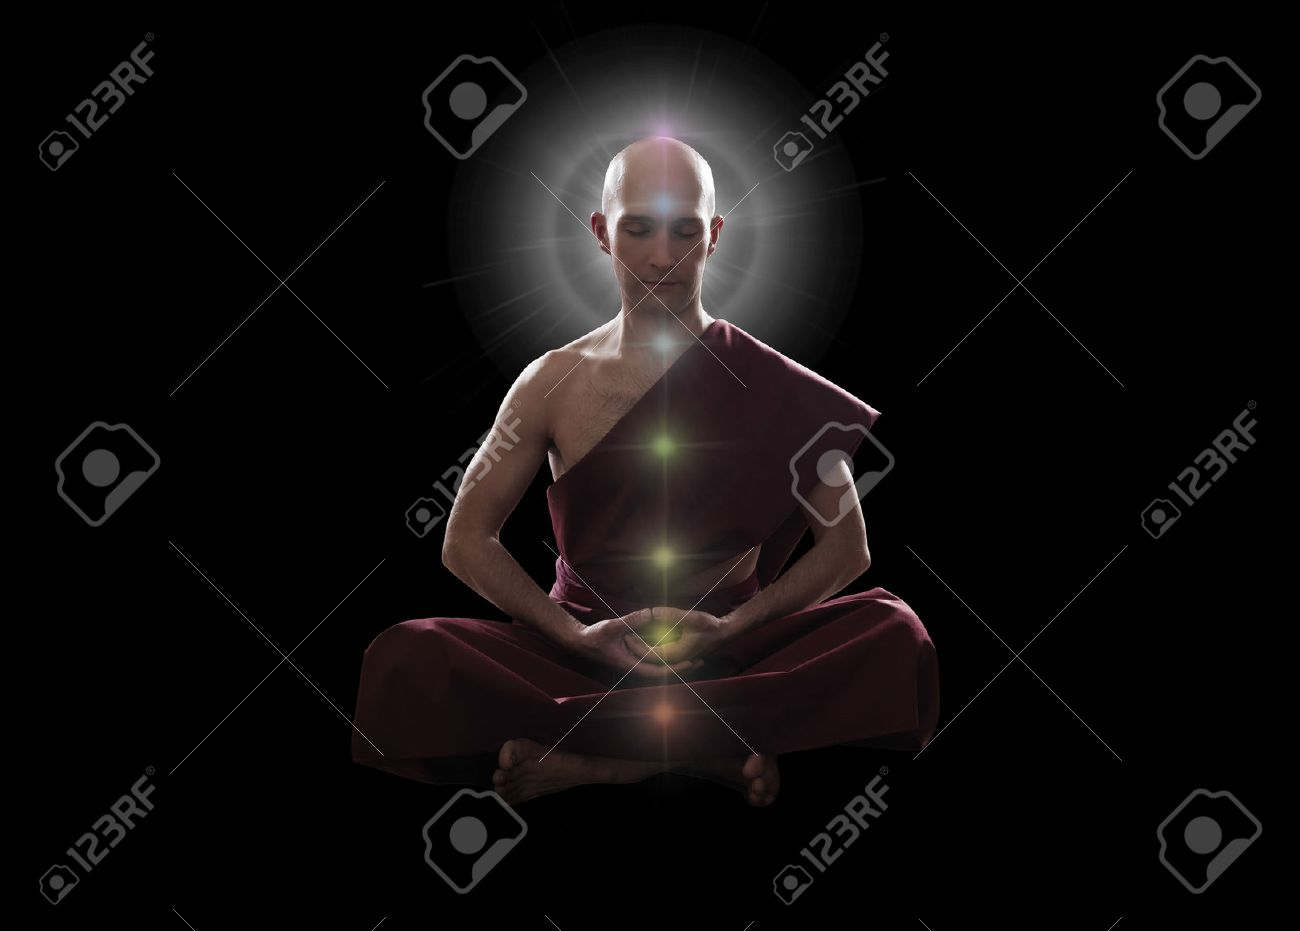 Buddhist Monk In Meditation Pose With Colorful Chakras Over Black Background Stock Photo